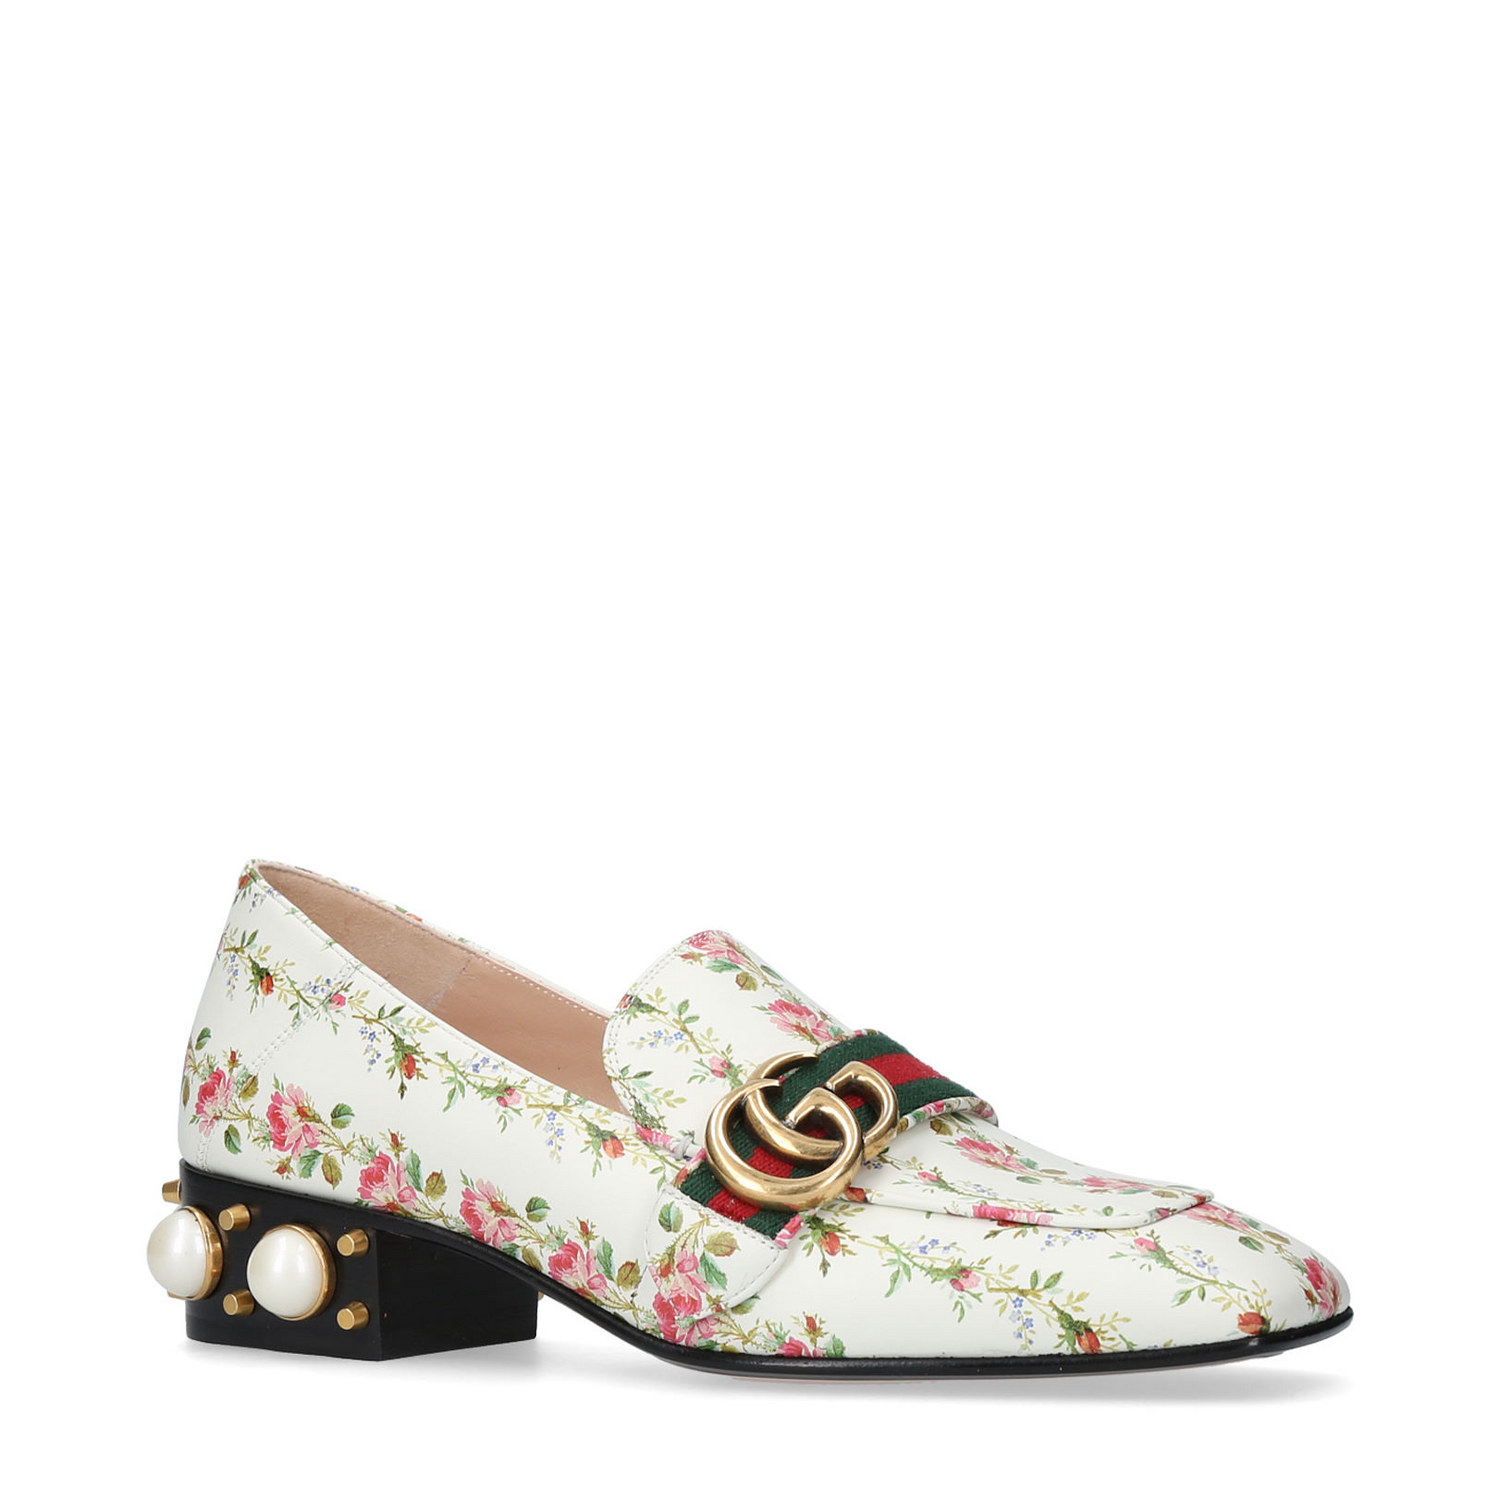 Gucci Pearl Heeled Loafers